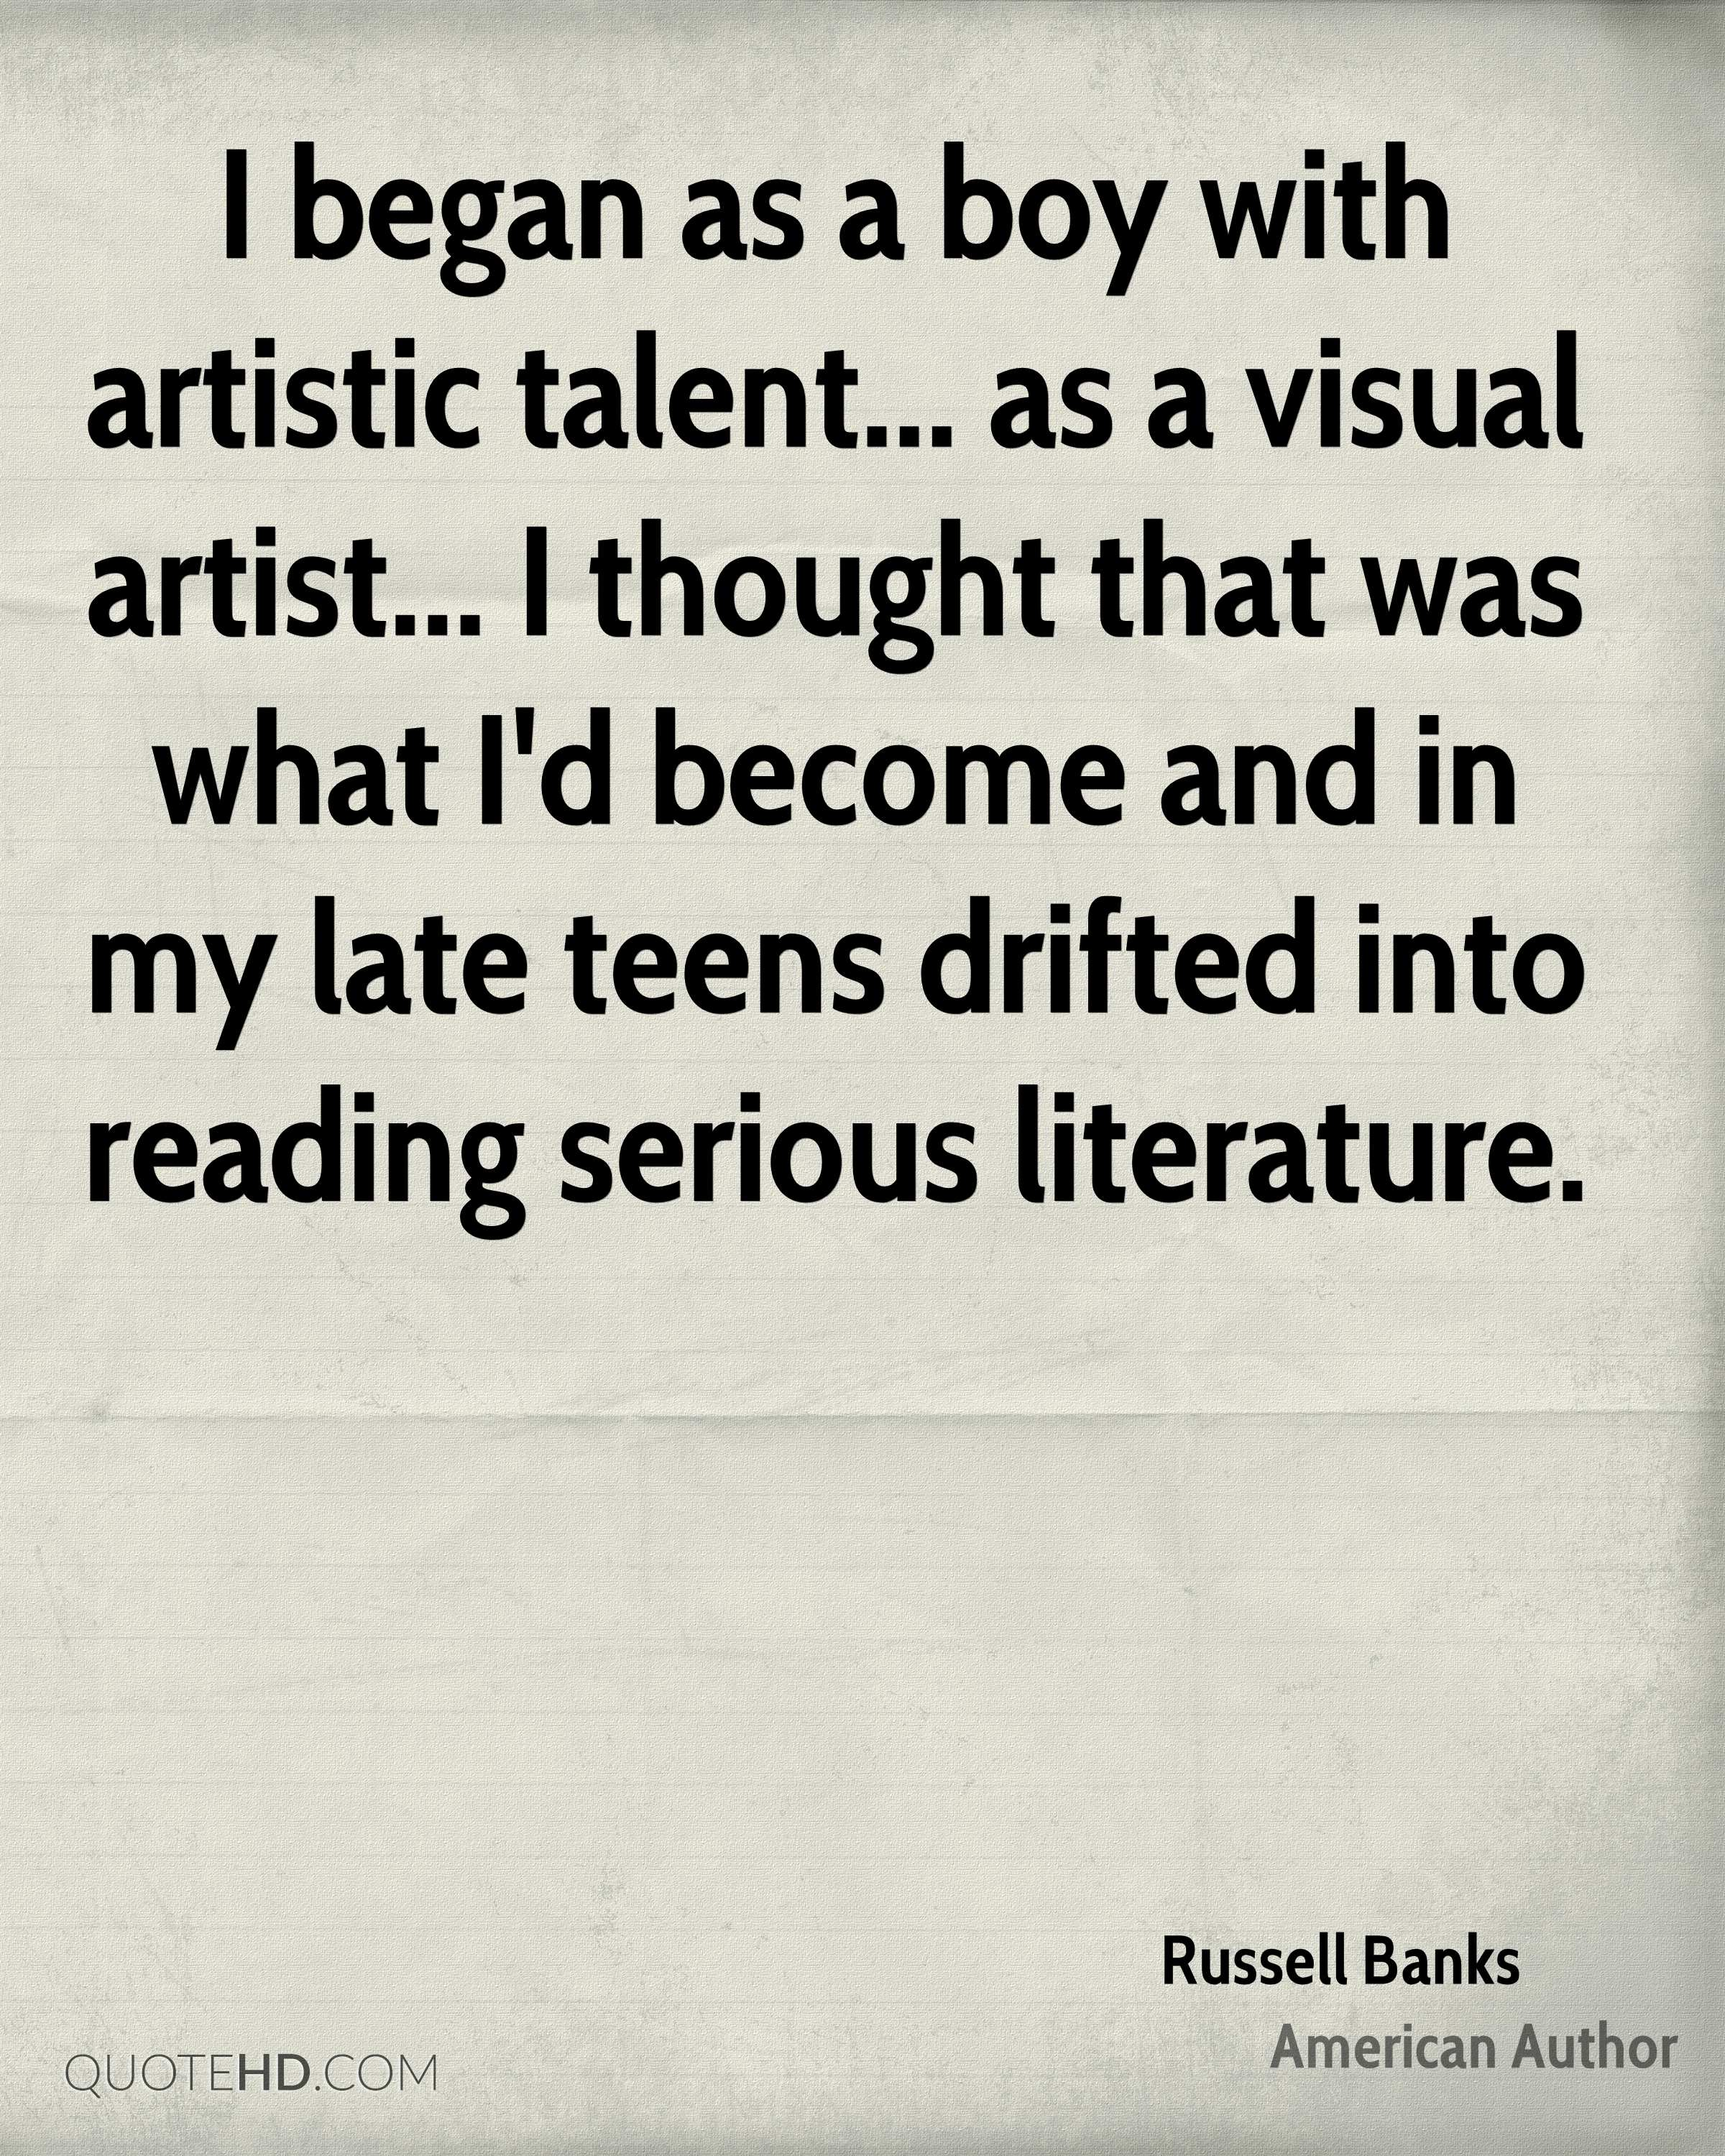 I began as a boy with artistic talent... as a visual artist... I thought that was what I'd become and in my late teens drifted into reading serious literature.